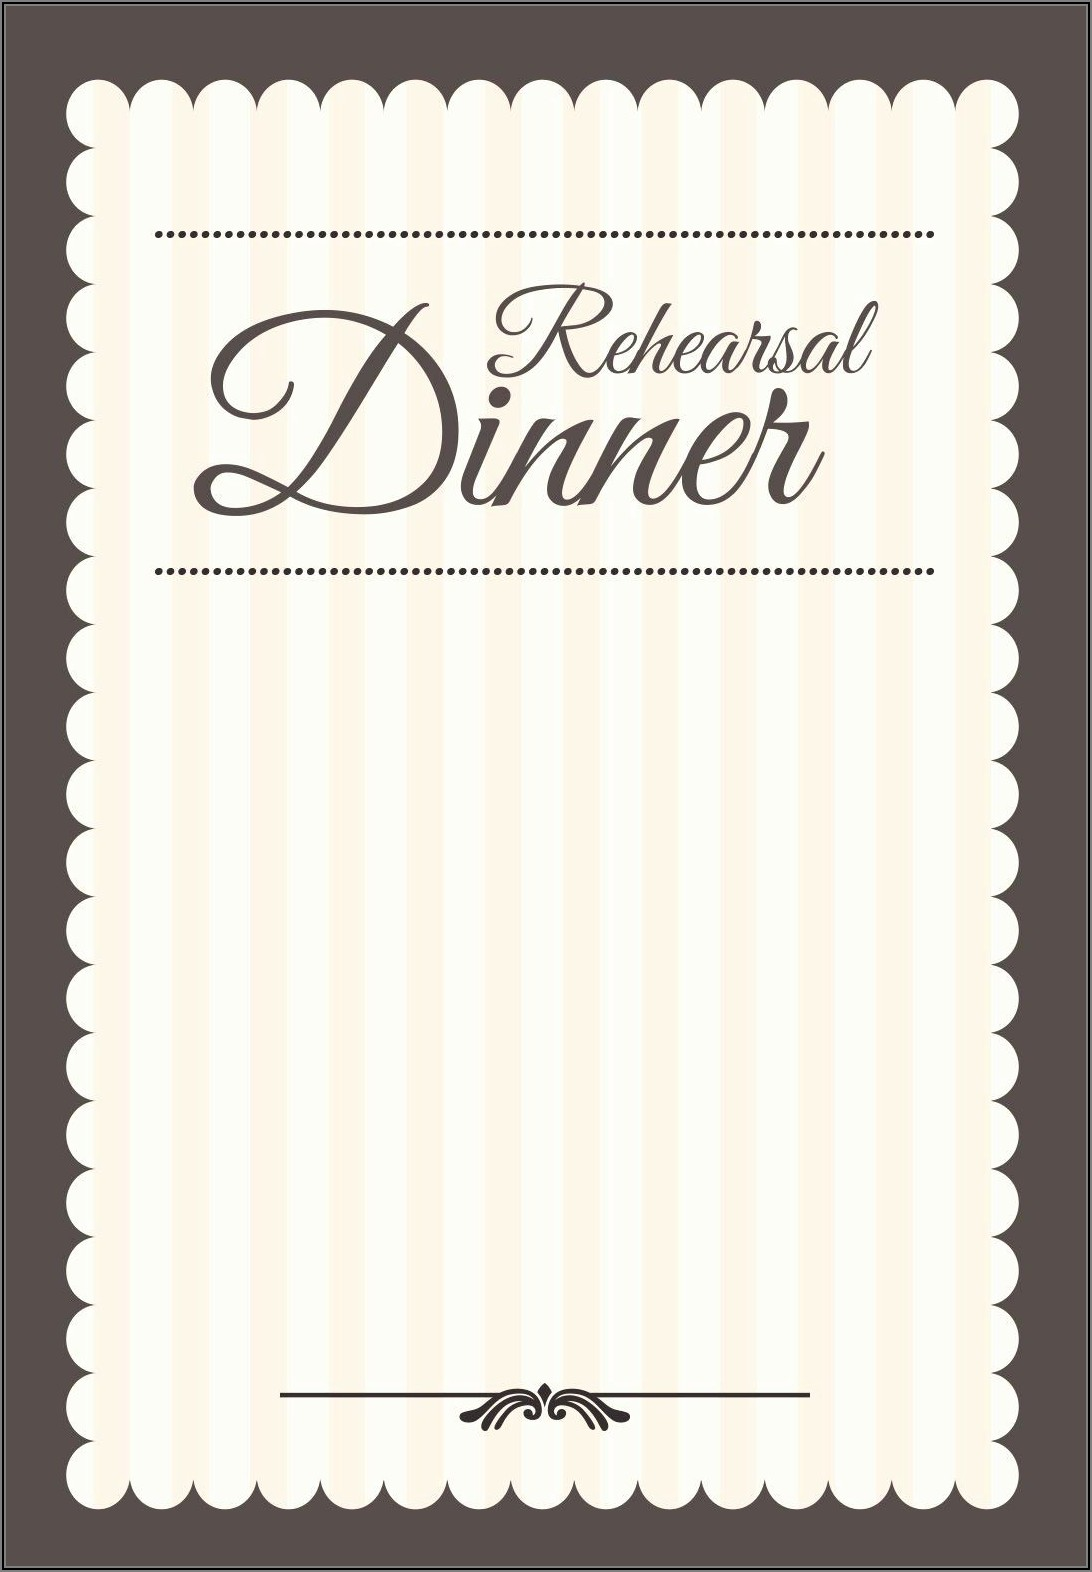 Rehearsal Dinner Invitation Template Free